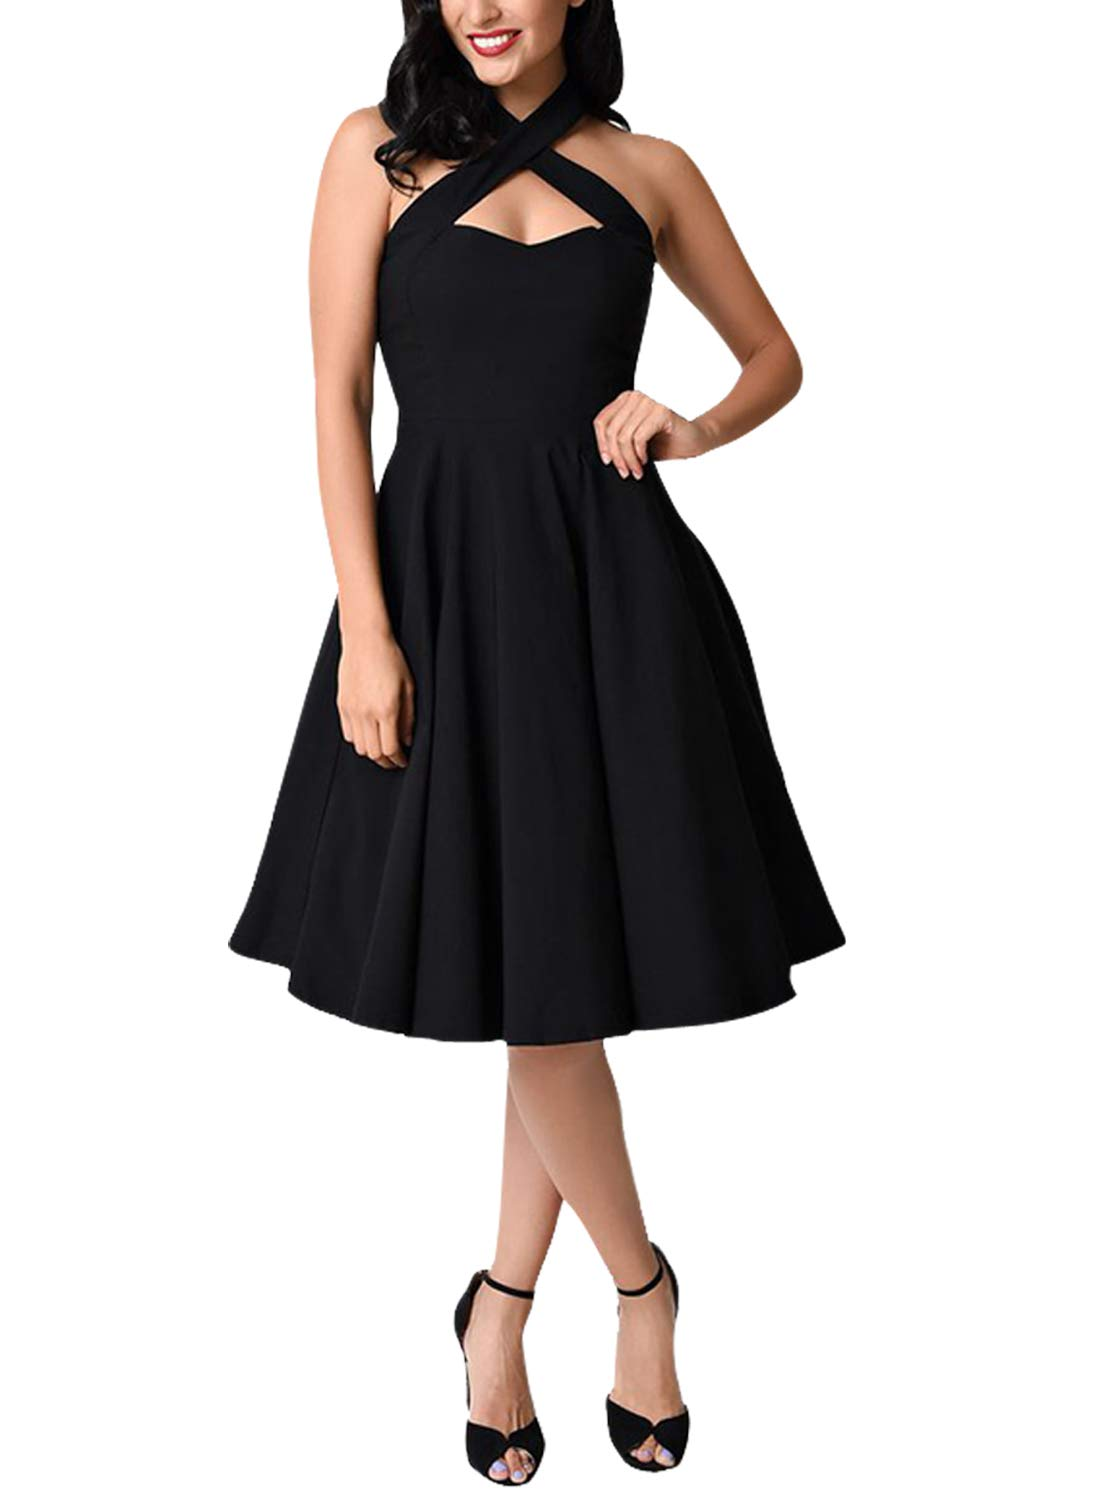 Asvivid Women SexyFashion Open Back Criss Cross Halter Fit and Flare Bridesmaid Homecoming Dress Plus Size 1X Black